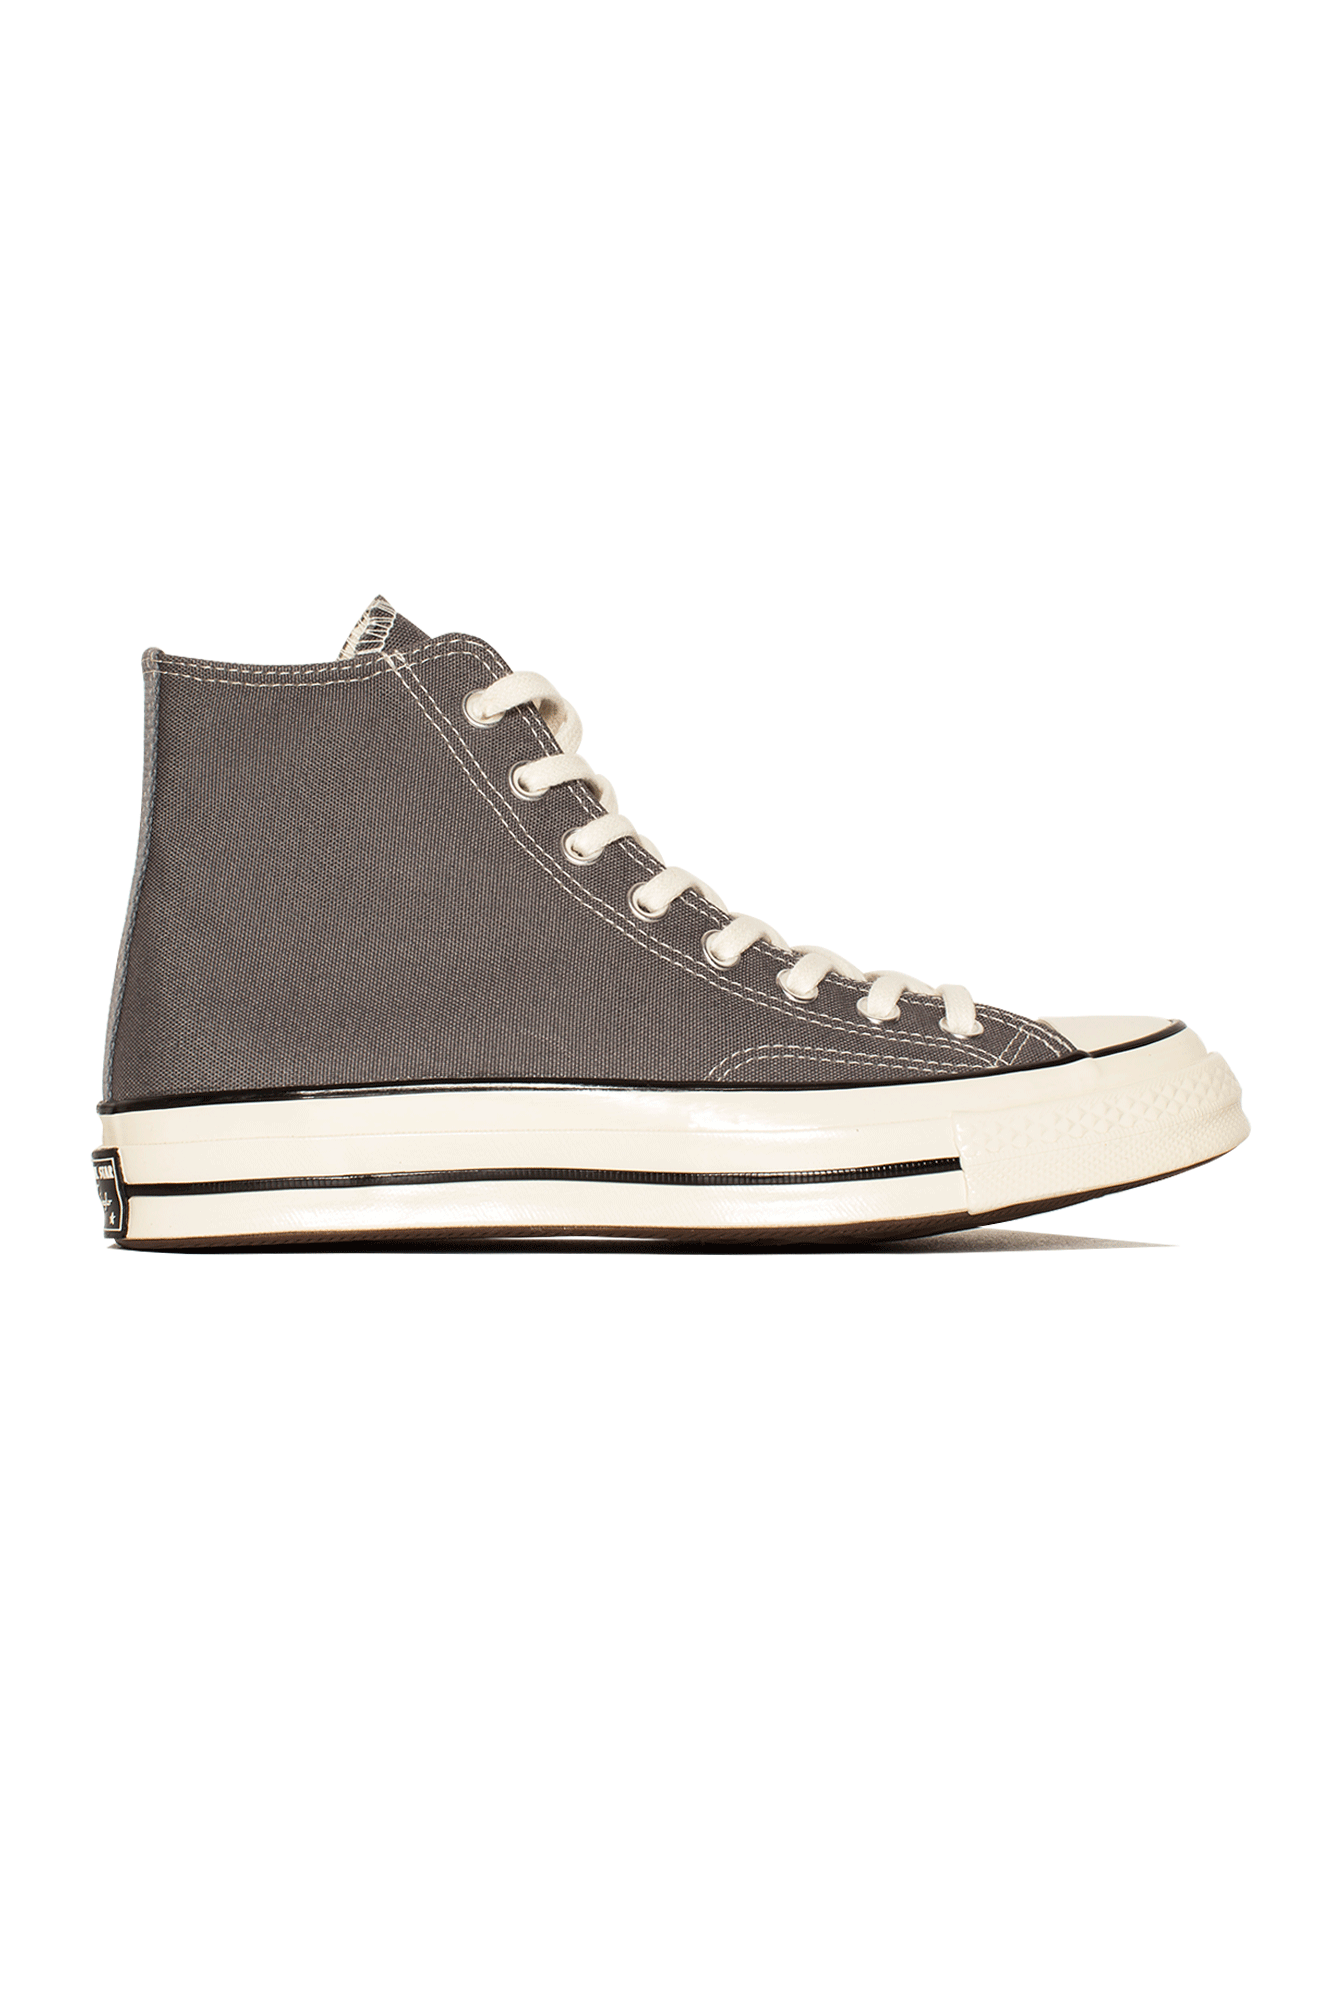 Converse Sneakers Chuck 70 HI Grey 164946C#000#048#4,5 - One Block Down